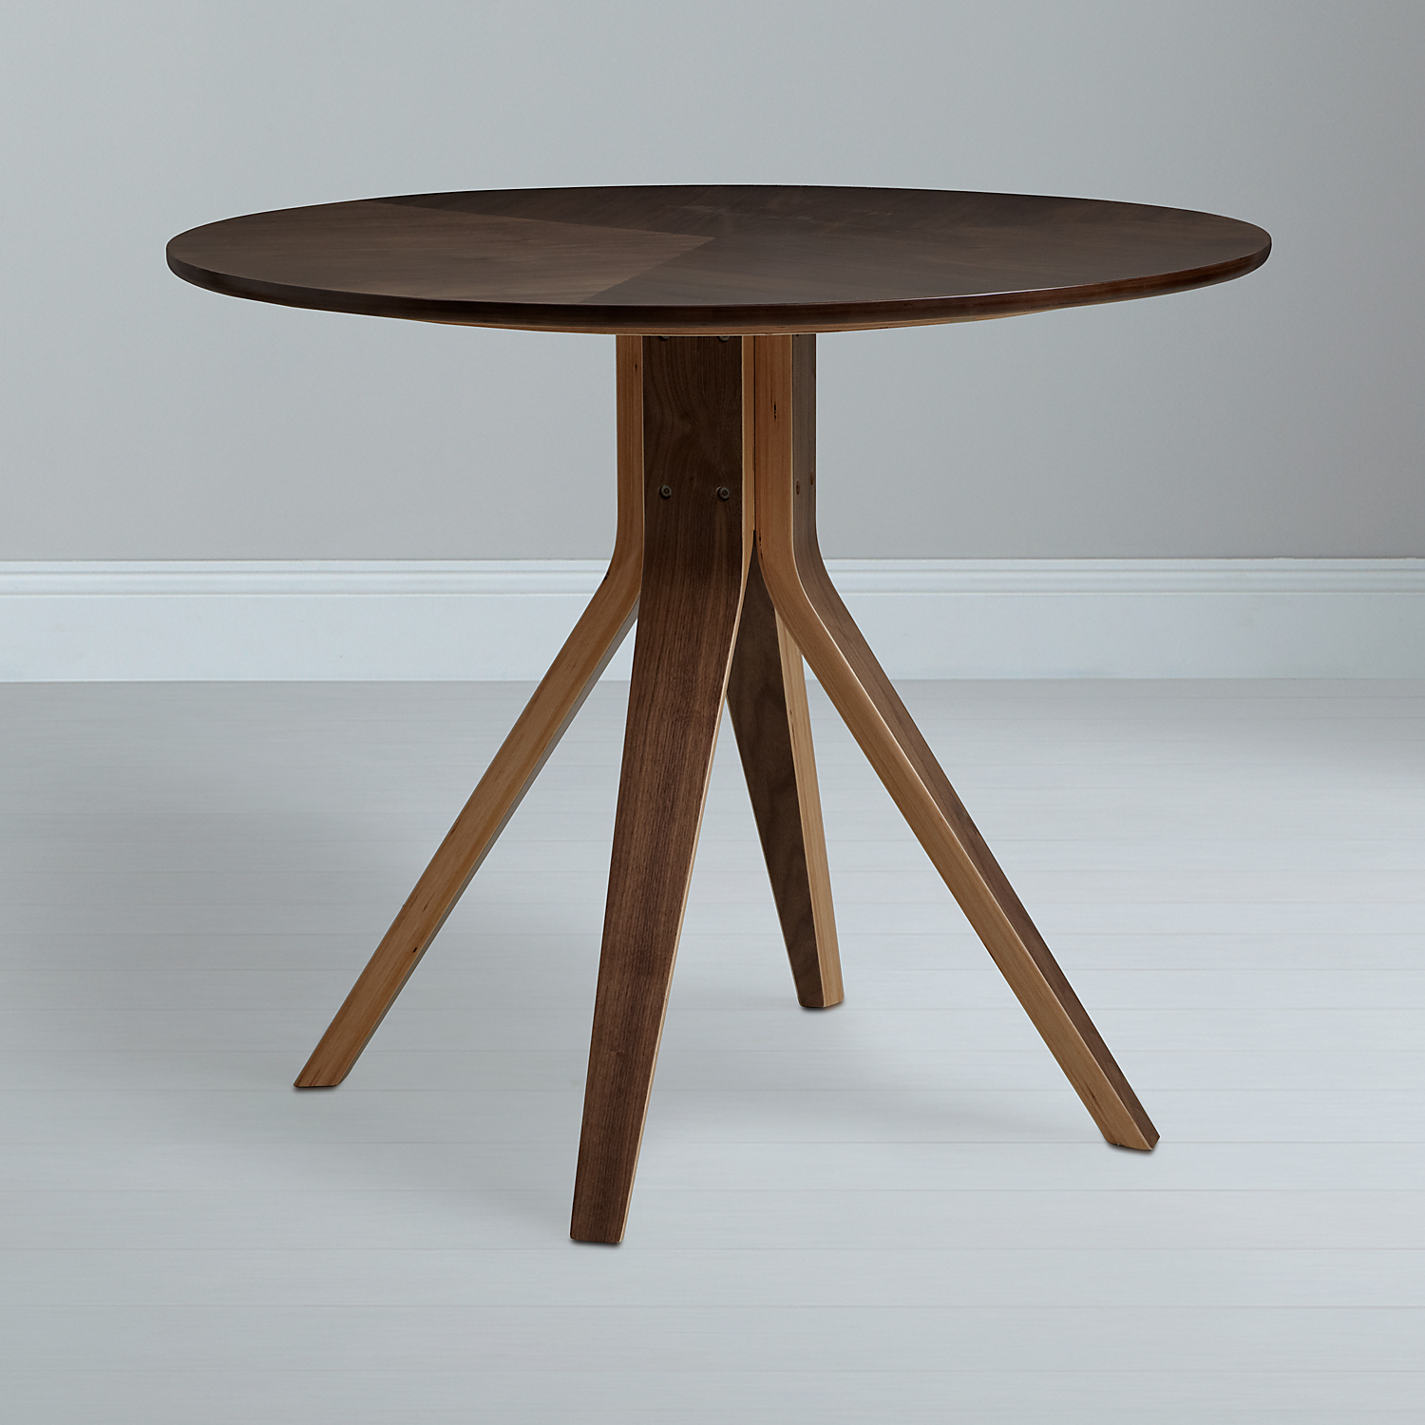 Buy john lewis radar 4 seater round dining table john lewis buy john lewis radar 4 seater round dining table online at johnlewis geotapseo Image collections